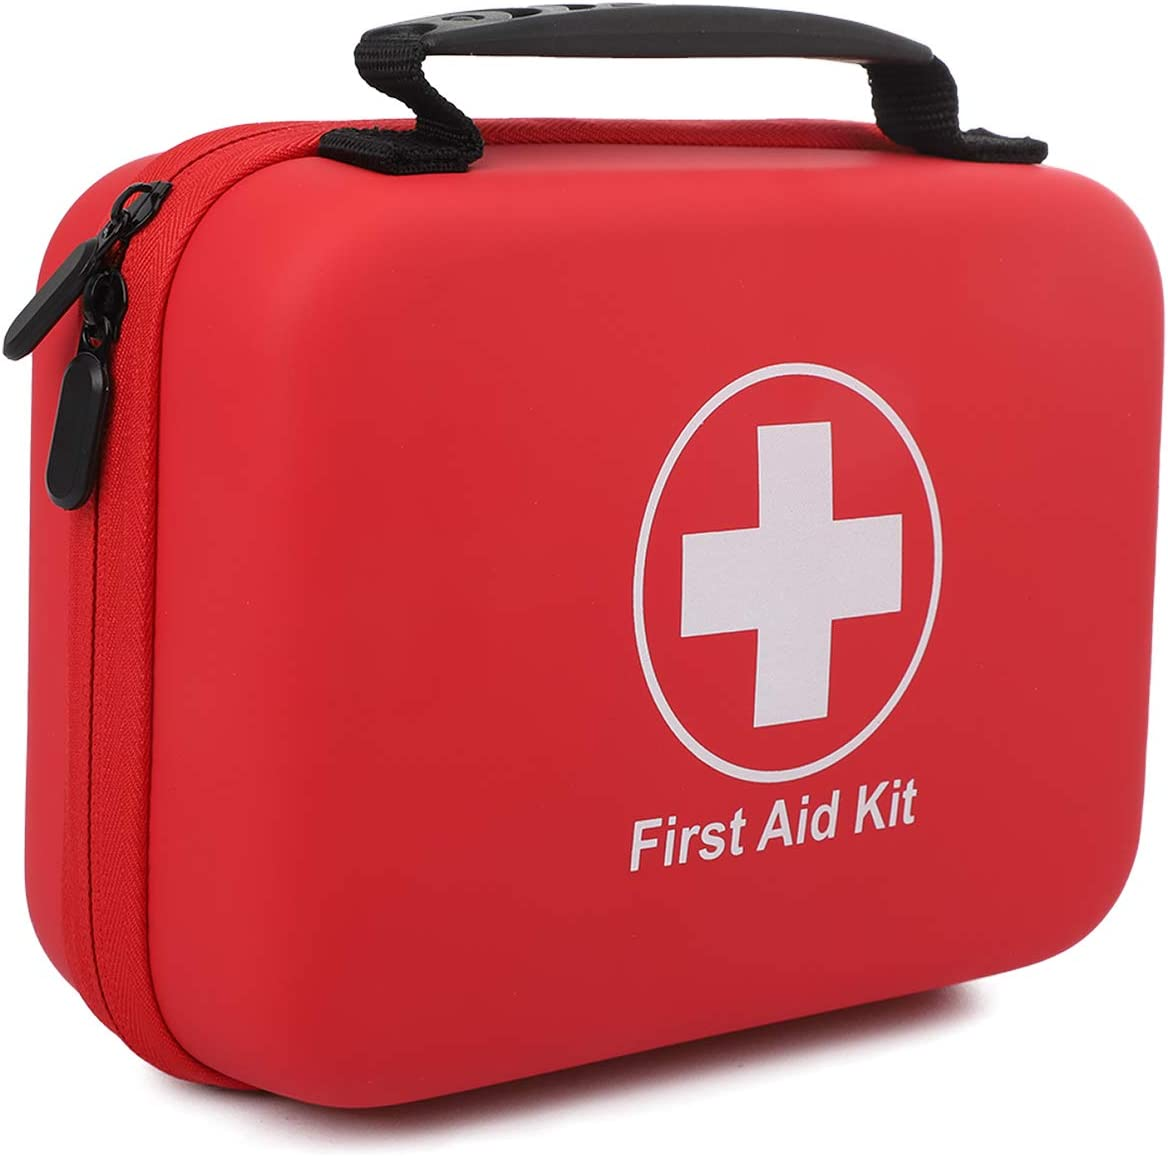 First Aid Kit for Home, Camping and Hiking Essentials Emergency Care with Waterproof Bag, Ideal for Car, Home, Boat, School, Camping, Hiking, Office,Travel, Sports First Aid Kit